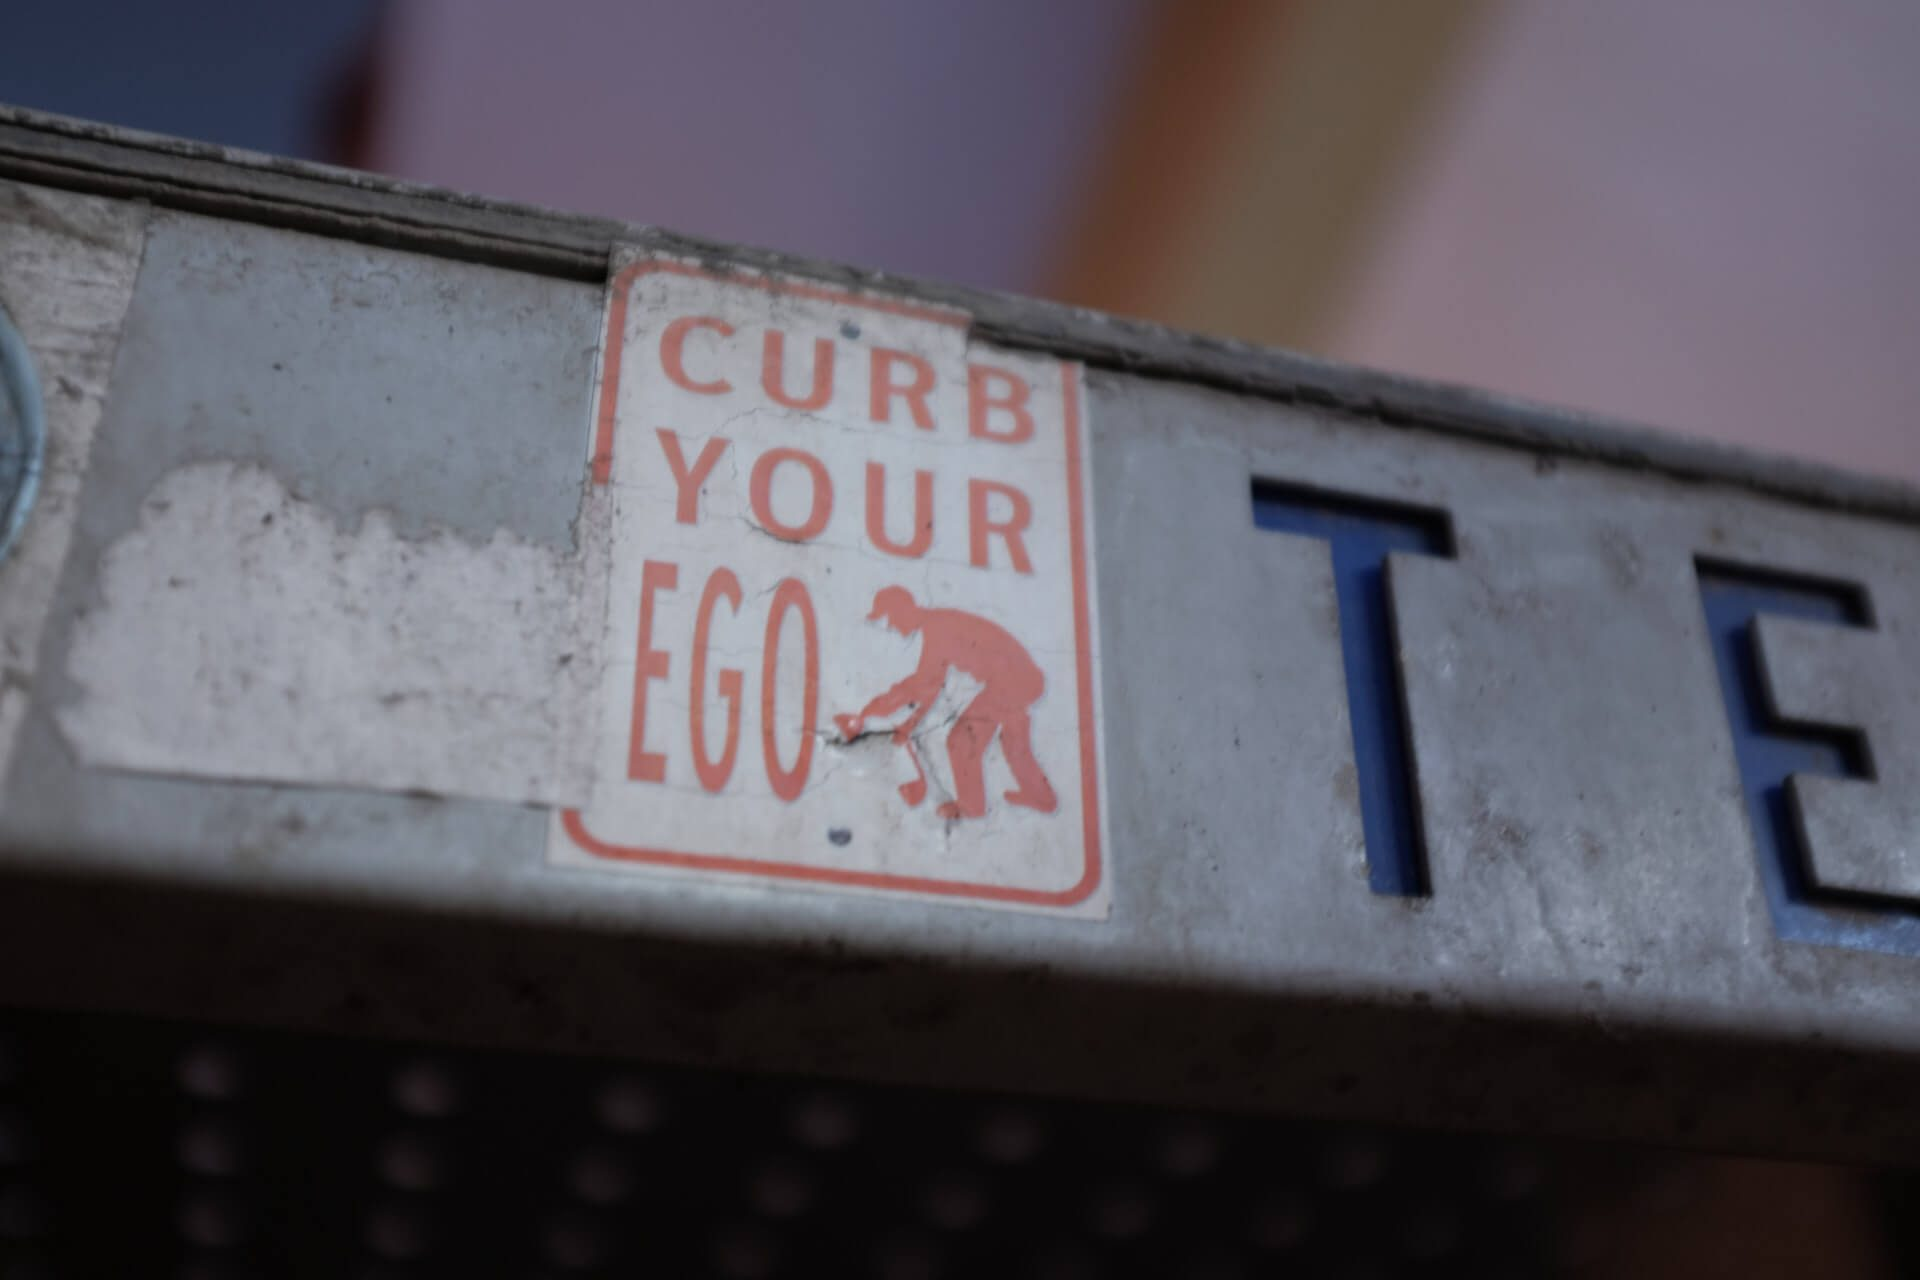 What is ego depletion and how does it make people more prone to addiction